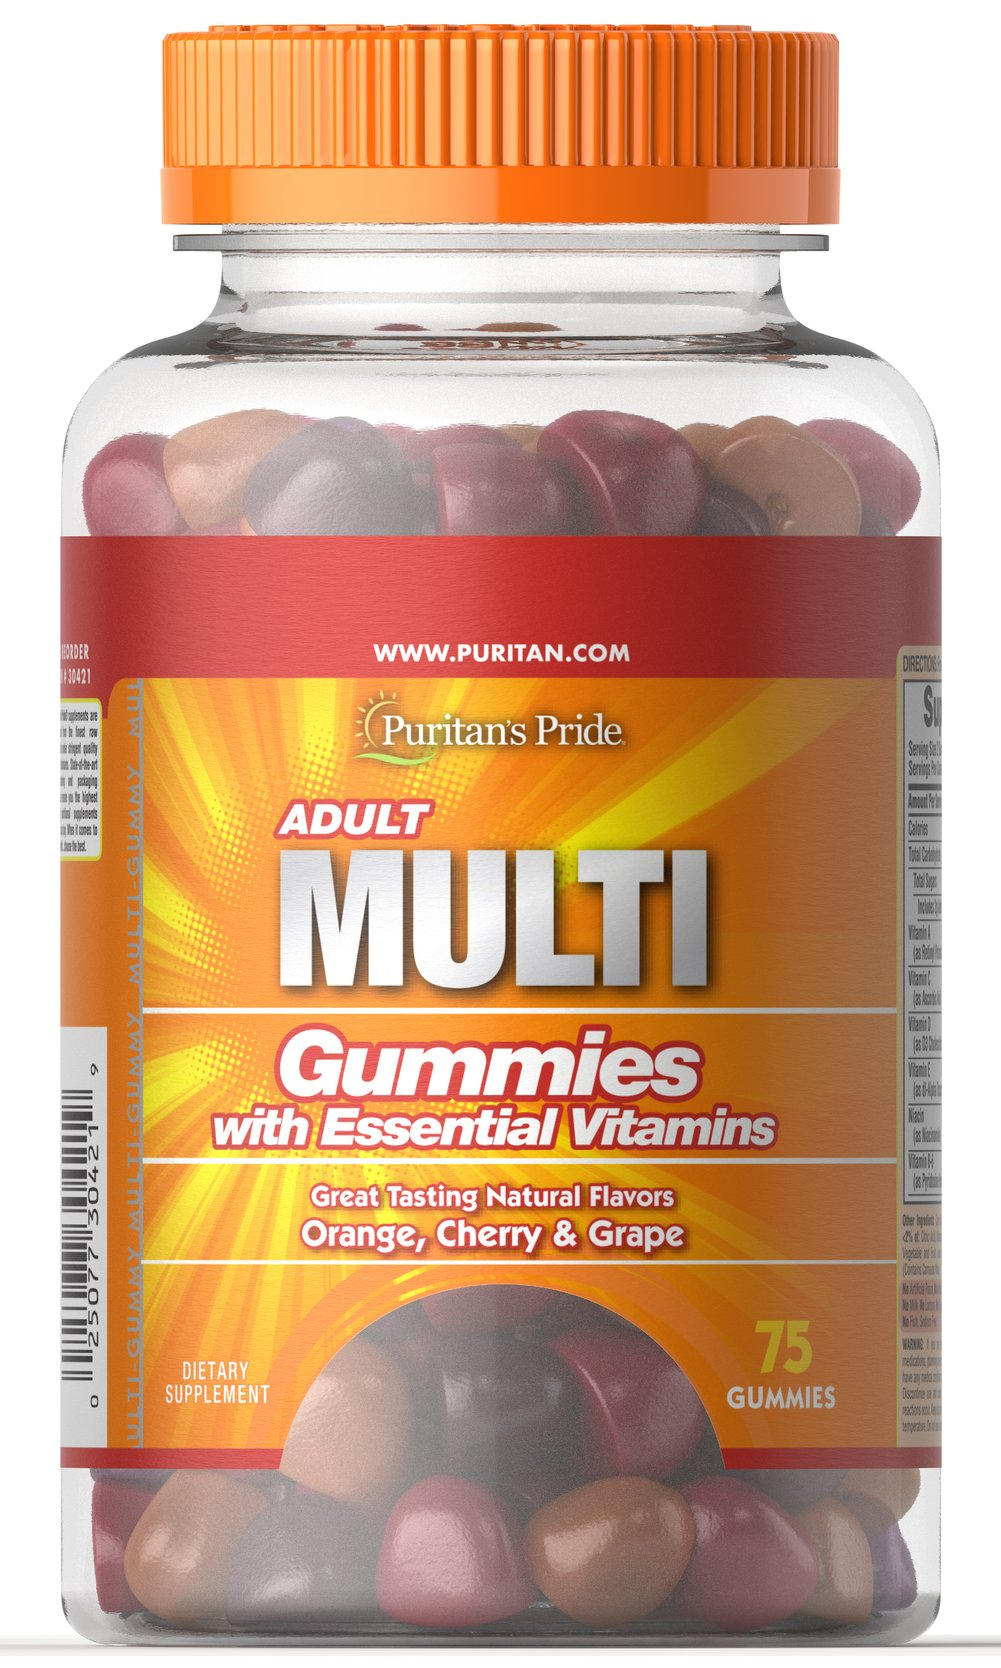 Adult Multivitamin Gummy  75 Gummies  $21.99